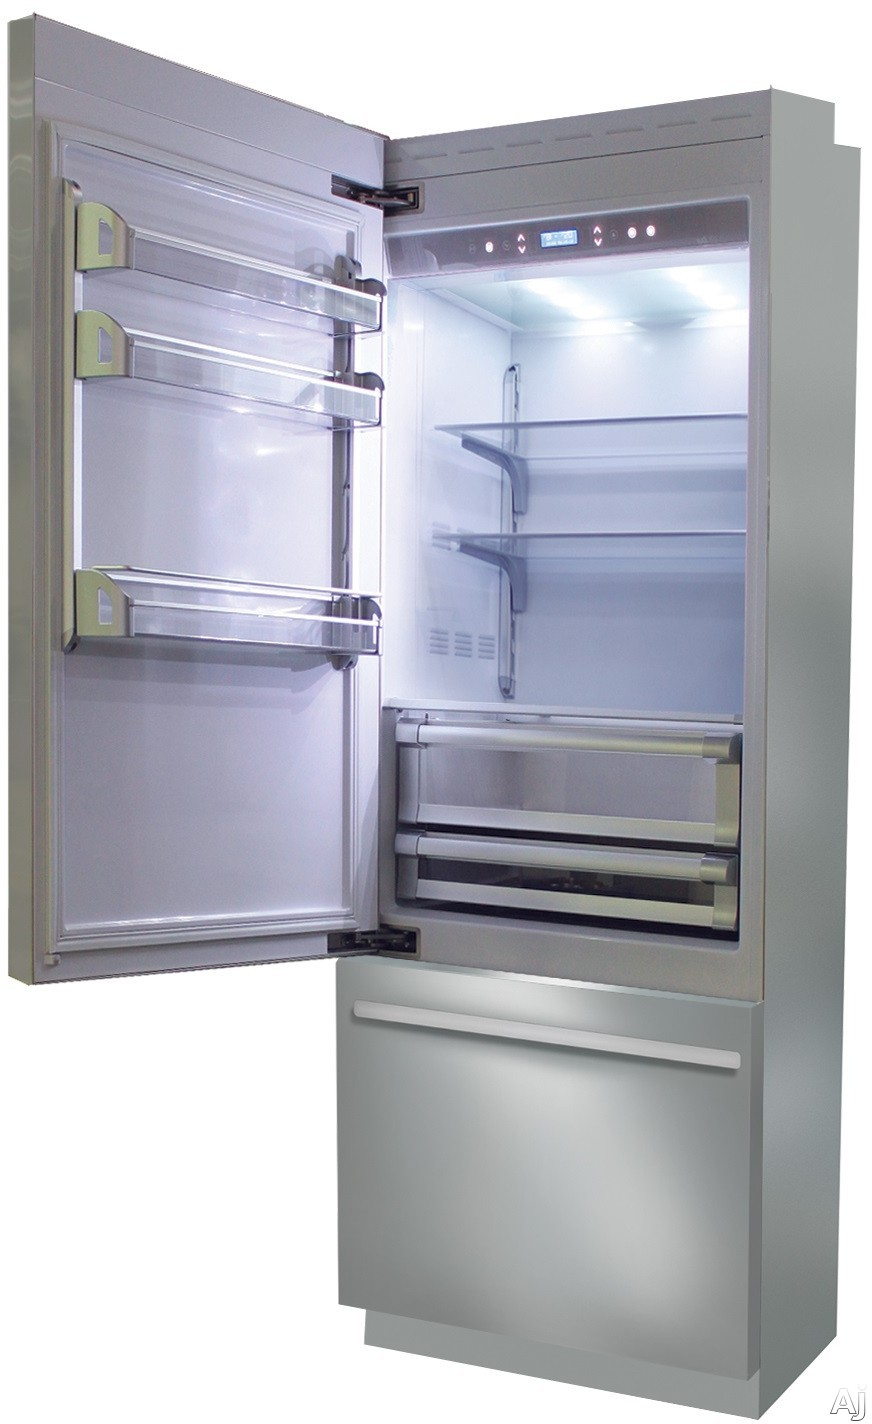 Fhiaba Brilliance Series BKI30BILS 30 Inch Built-In Bottom Freezer Refrigerator with TriMode Drawer, Frost-Free Operation, Soft Closing System, LED Lighting, Bottle Cooler and Ice Maker: Left Hinge